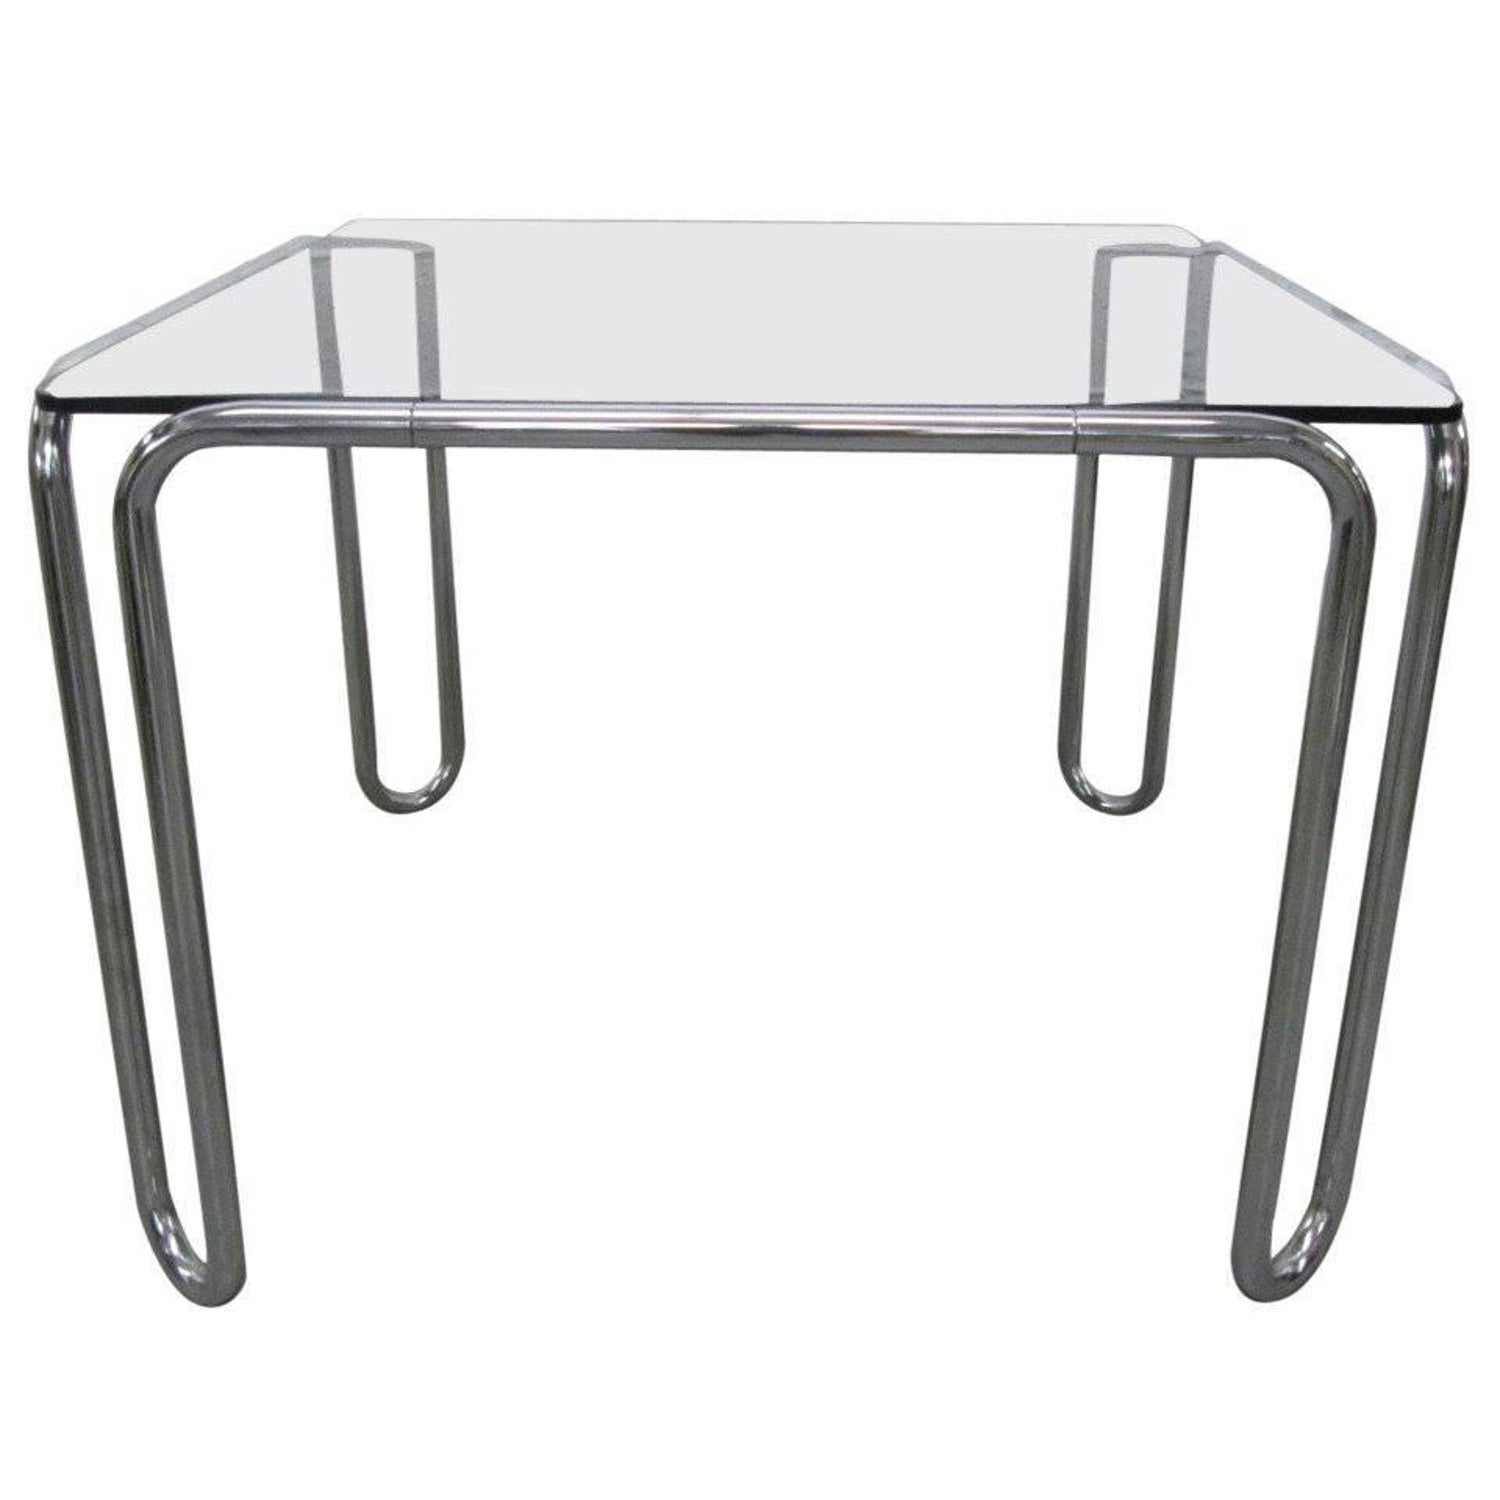 Marcel breuer tubular steel b10 table for sale at 1stdibs geotapseo Images